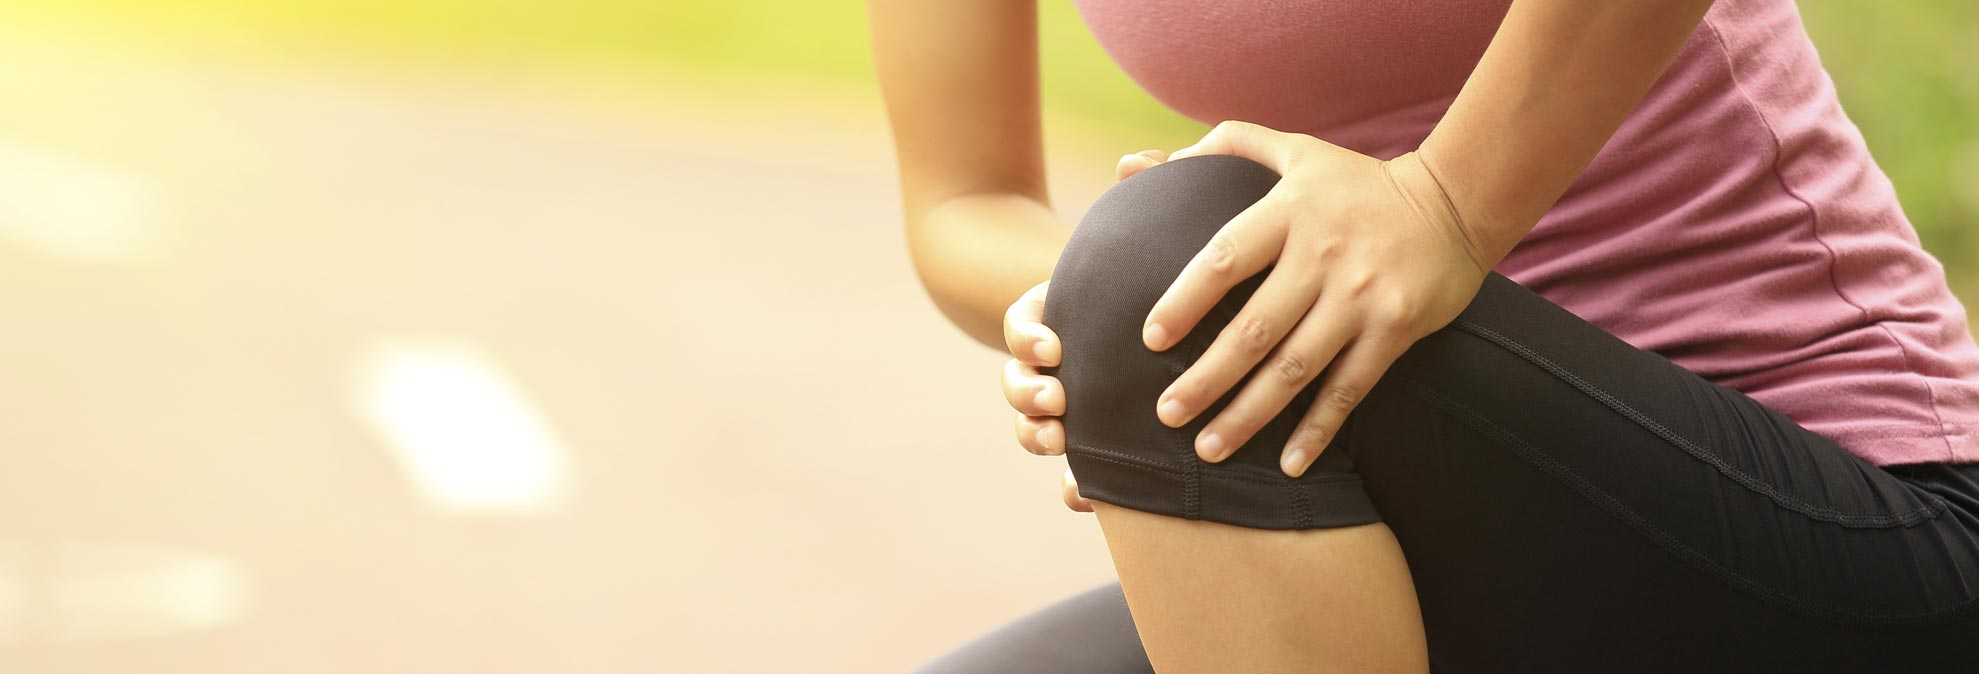 Best Ways To Treat Joint Pain